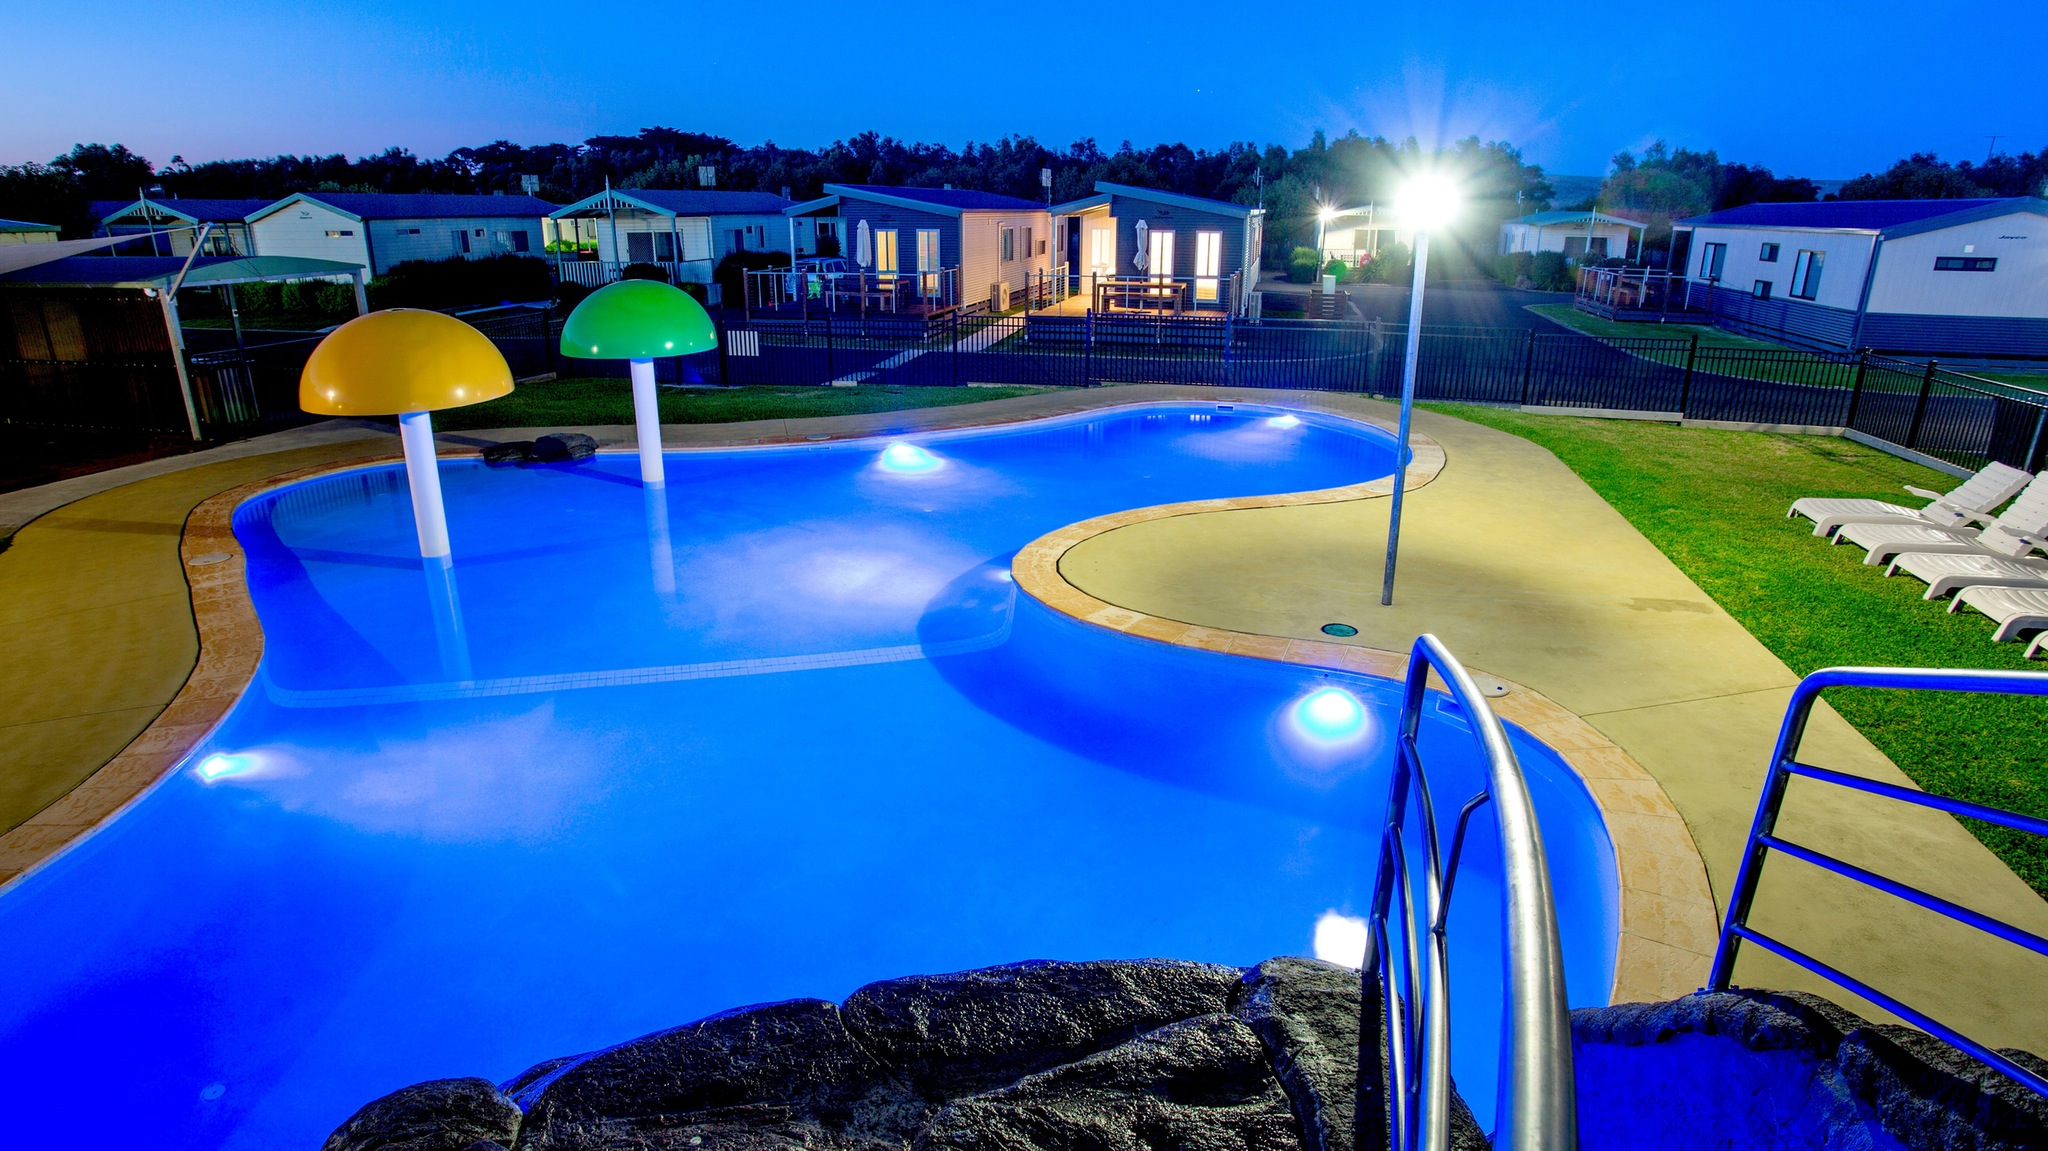 Lagoon Pool by night